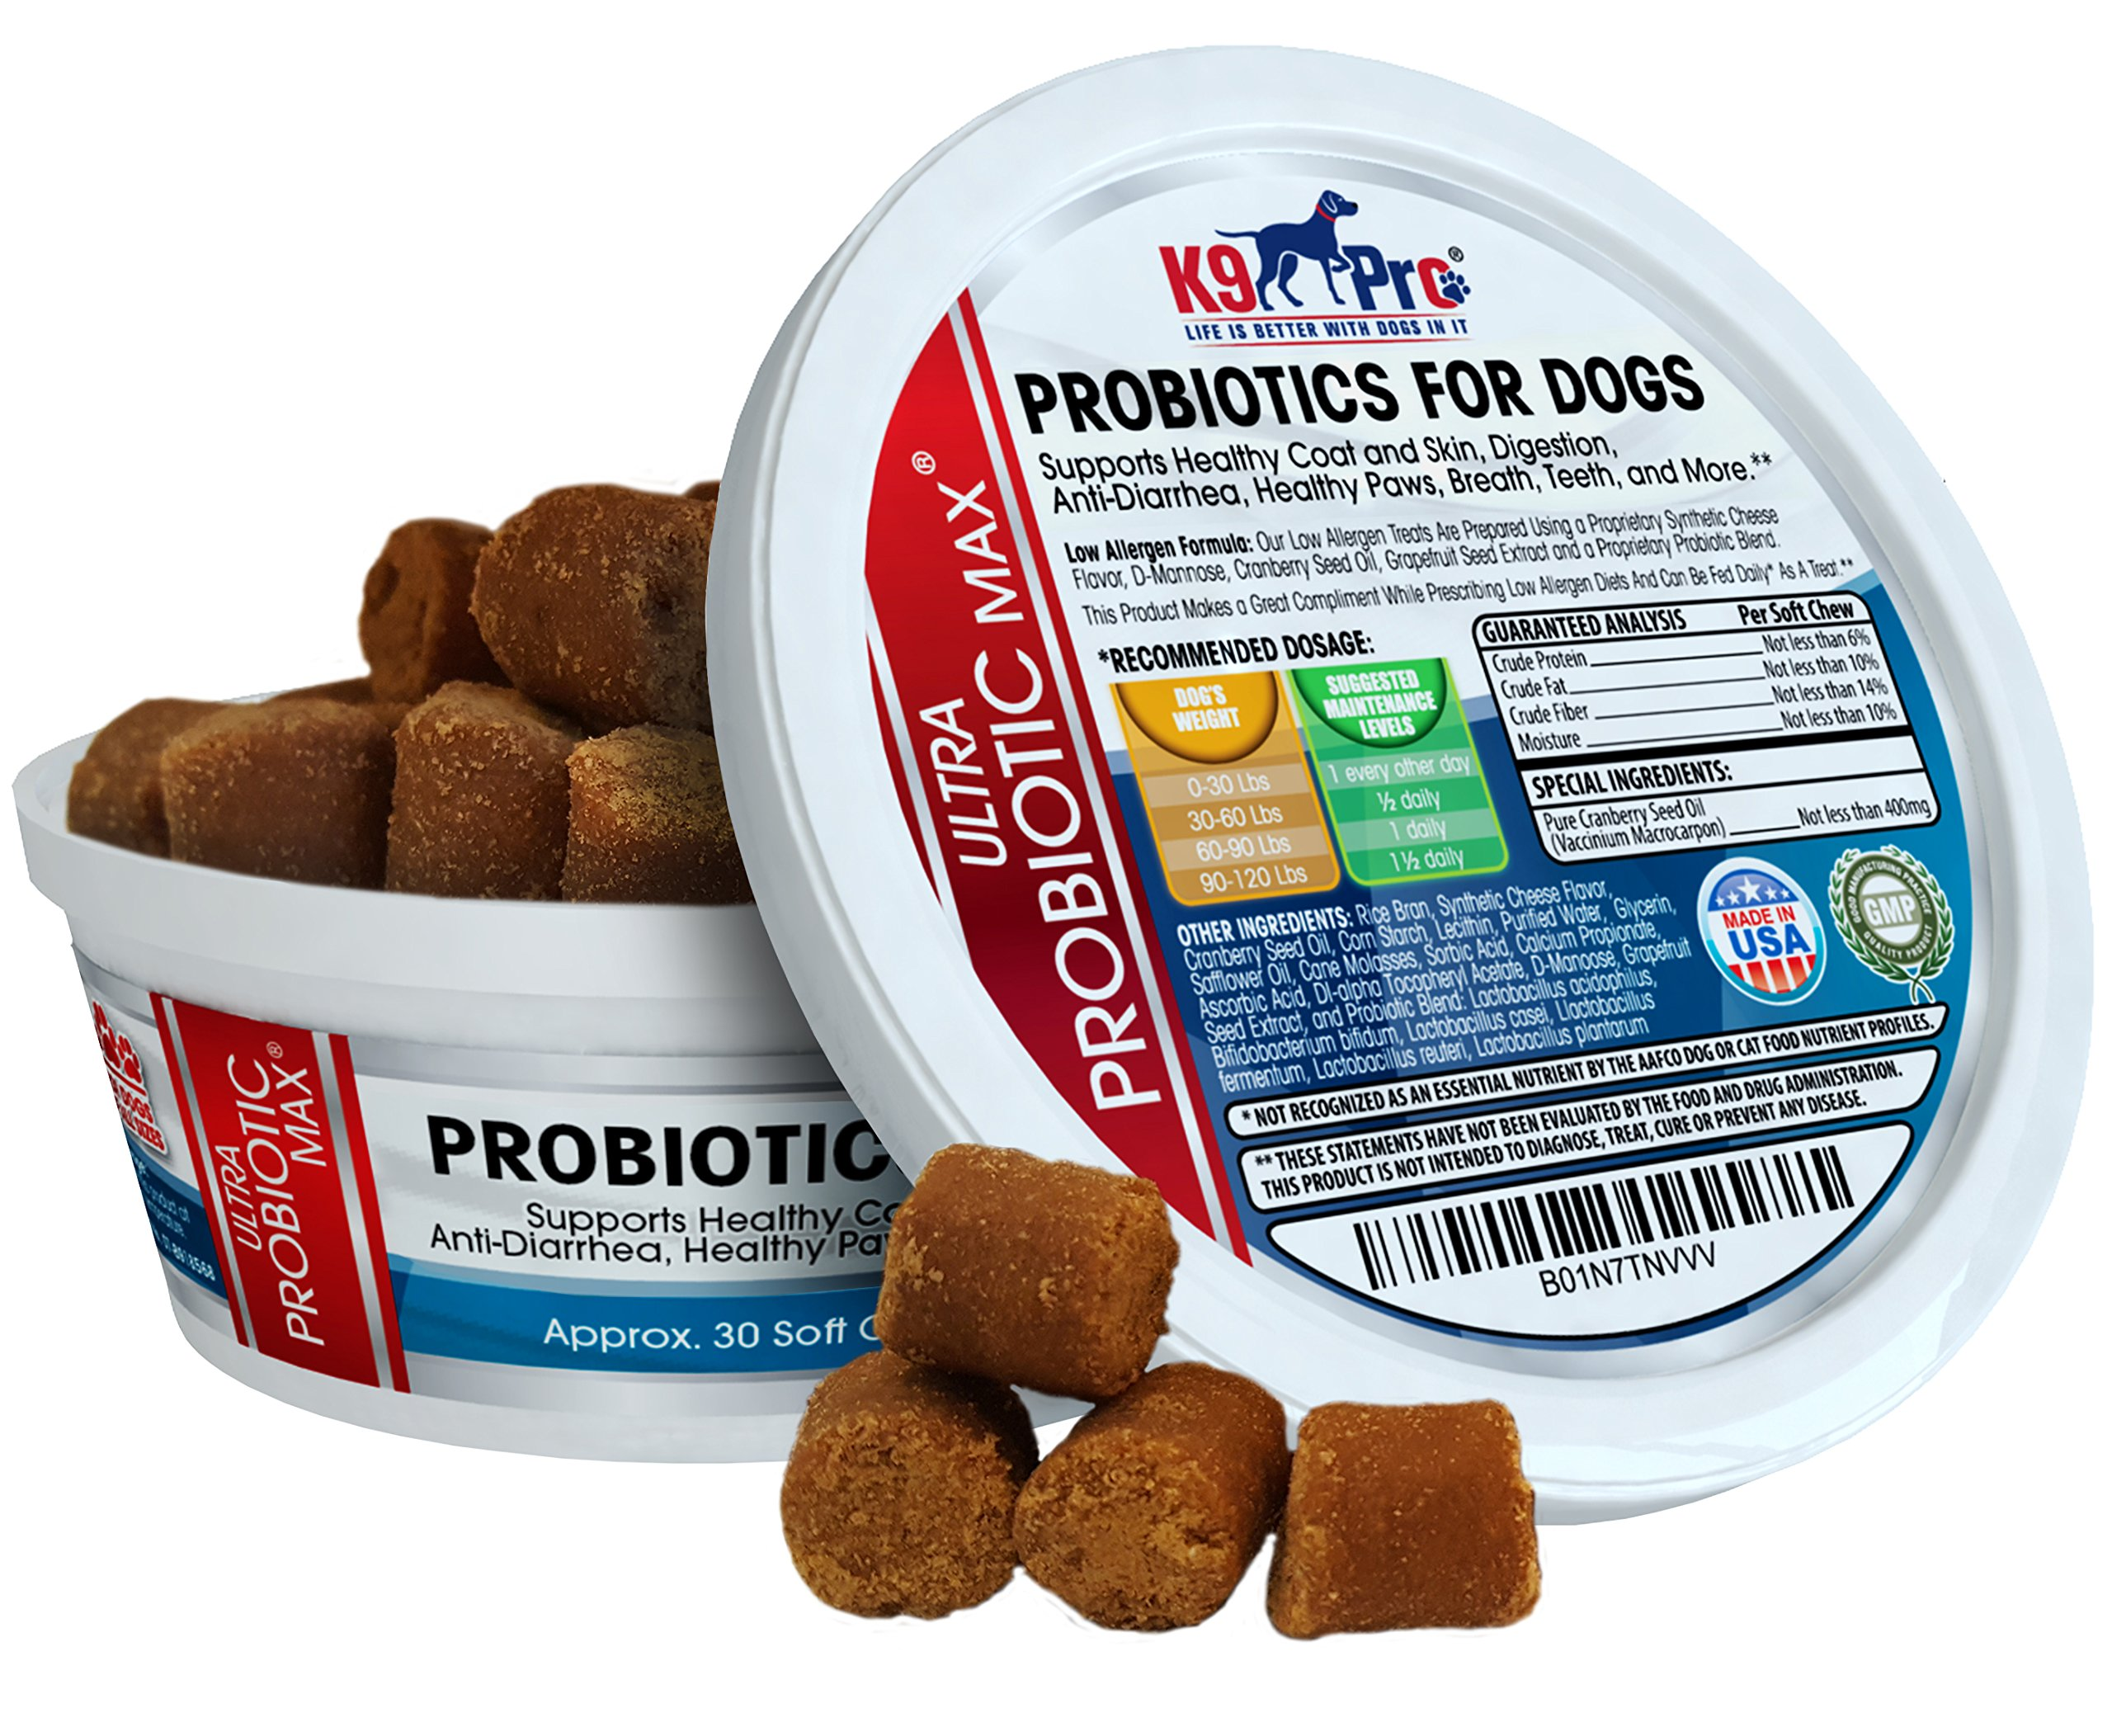 Probiotics For Dogs 7 Billion CFU & 6 Strains Per Tasty Chewable Probiotic For Upset Stomach Dog Diarrhea Yeast Gas UTI Bad Breath Skin Itching Hot Spots Allergies and coprophagia treatment for dogs